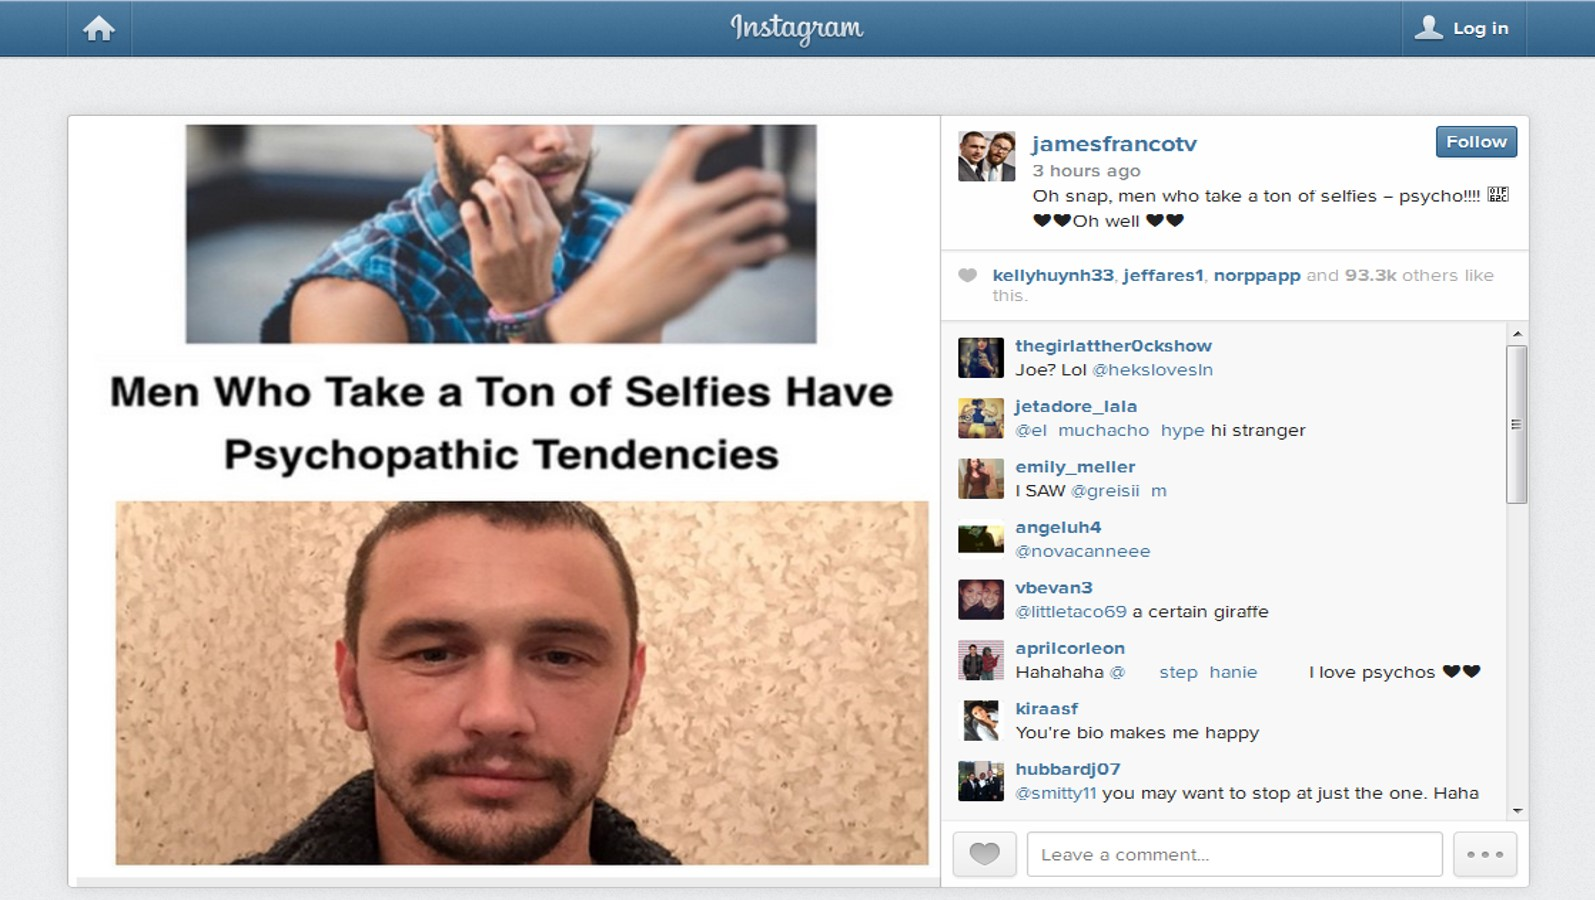 James Franco selfie psycho